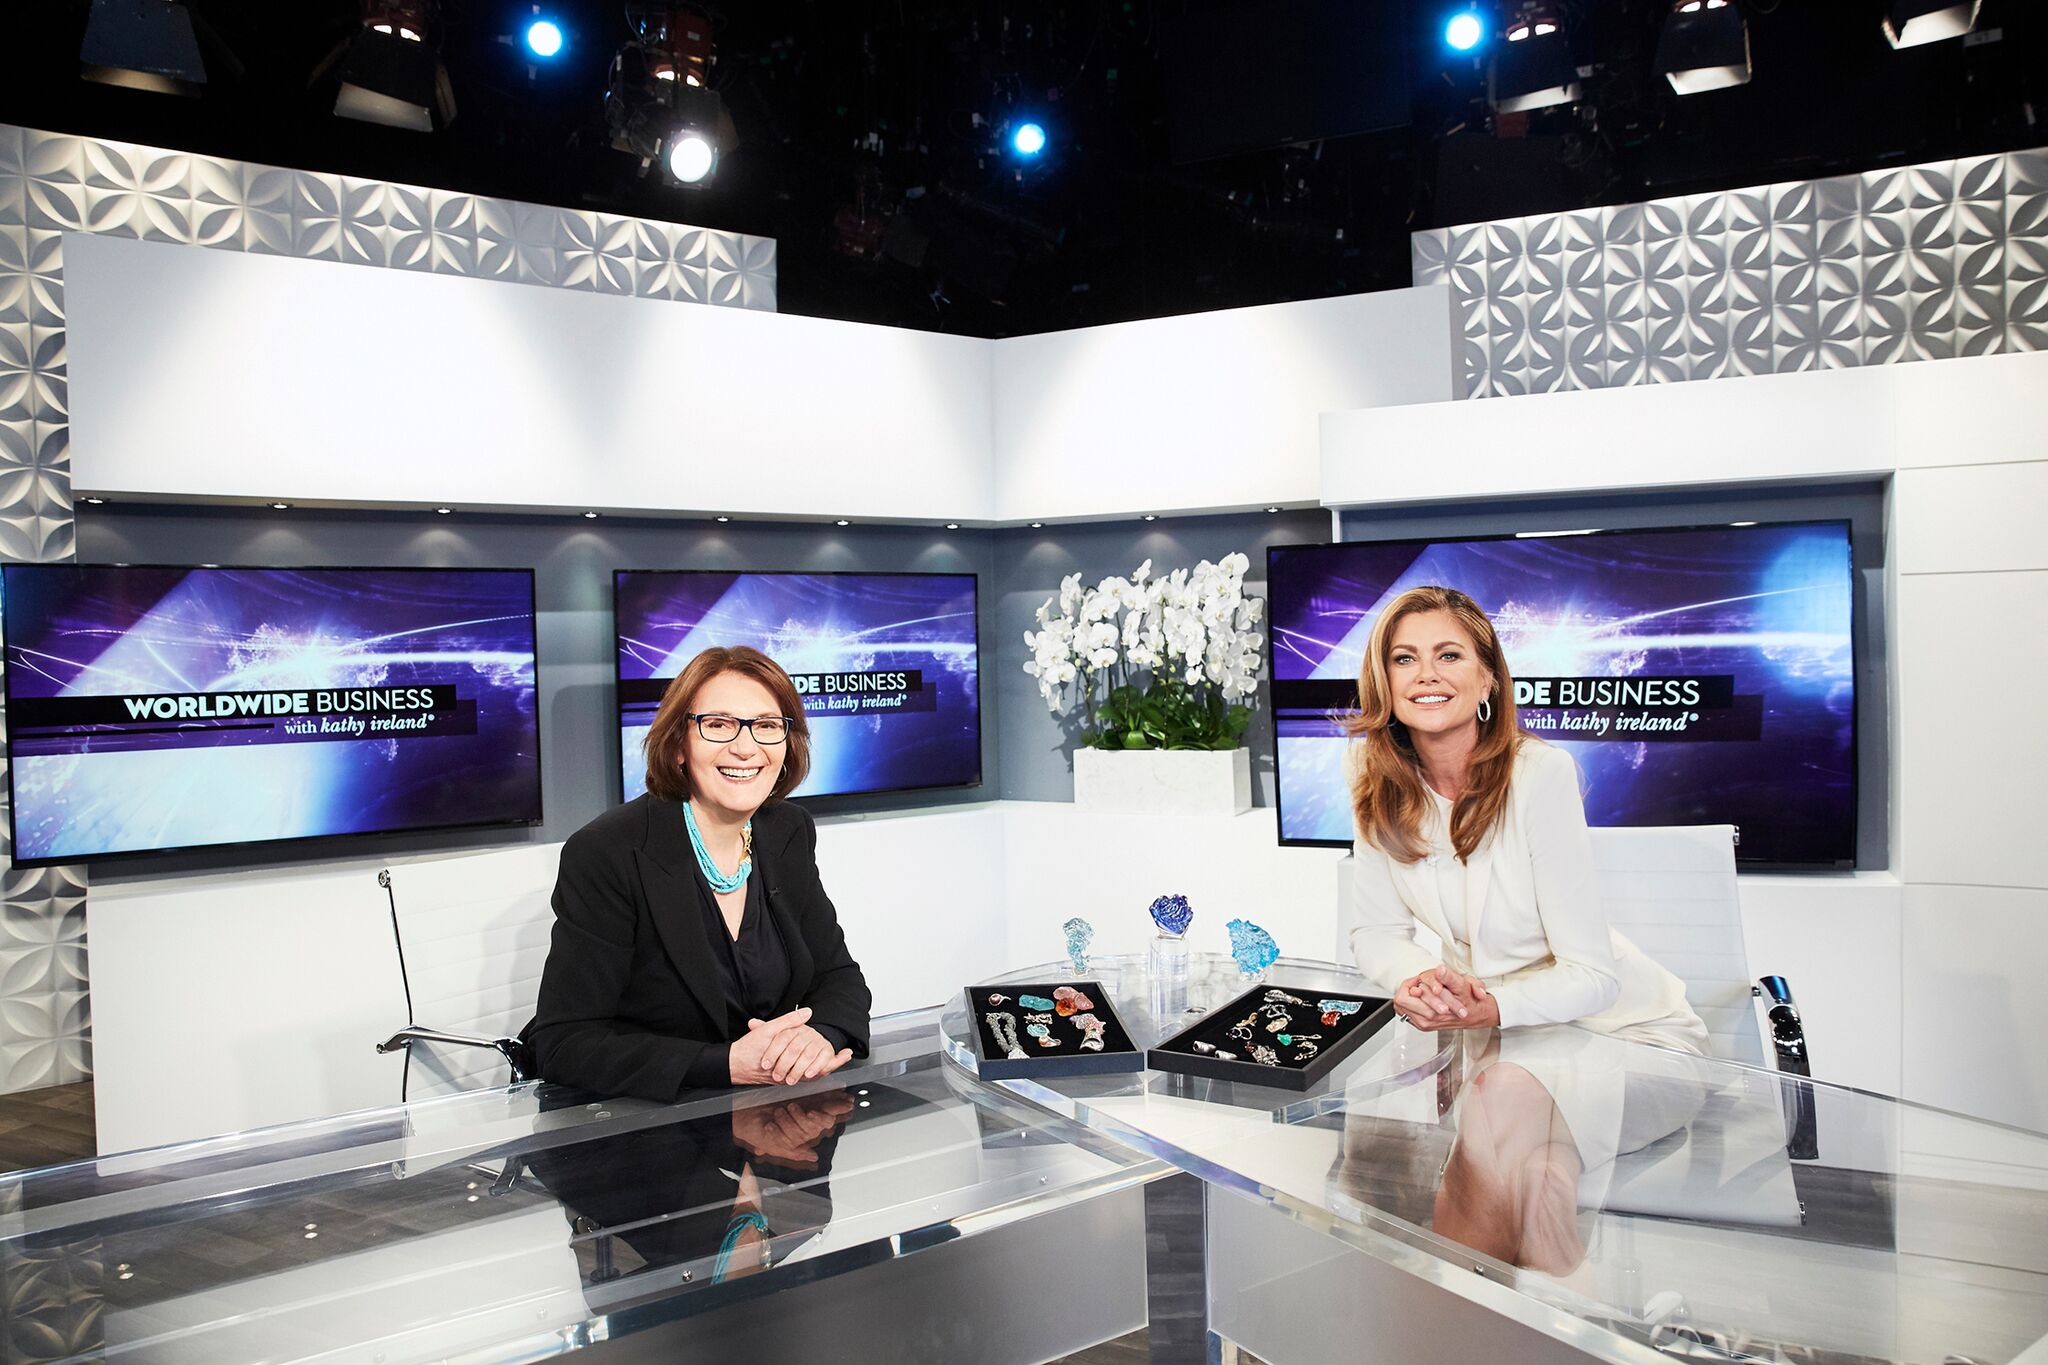 Naomi Sarna on Worldwide Business with kathy ireland